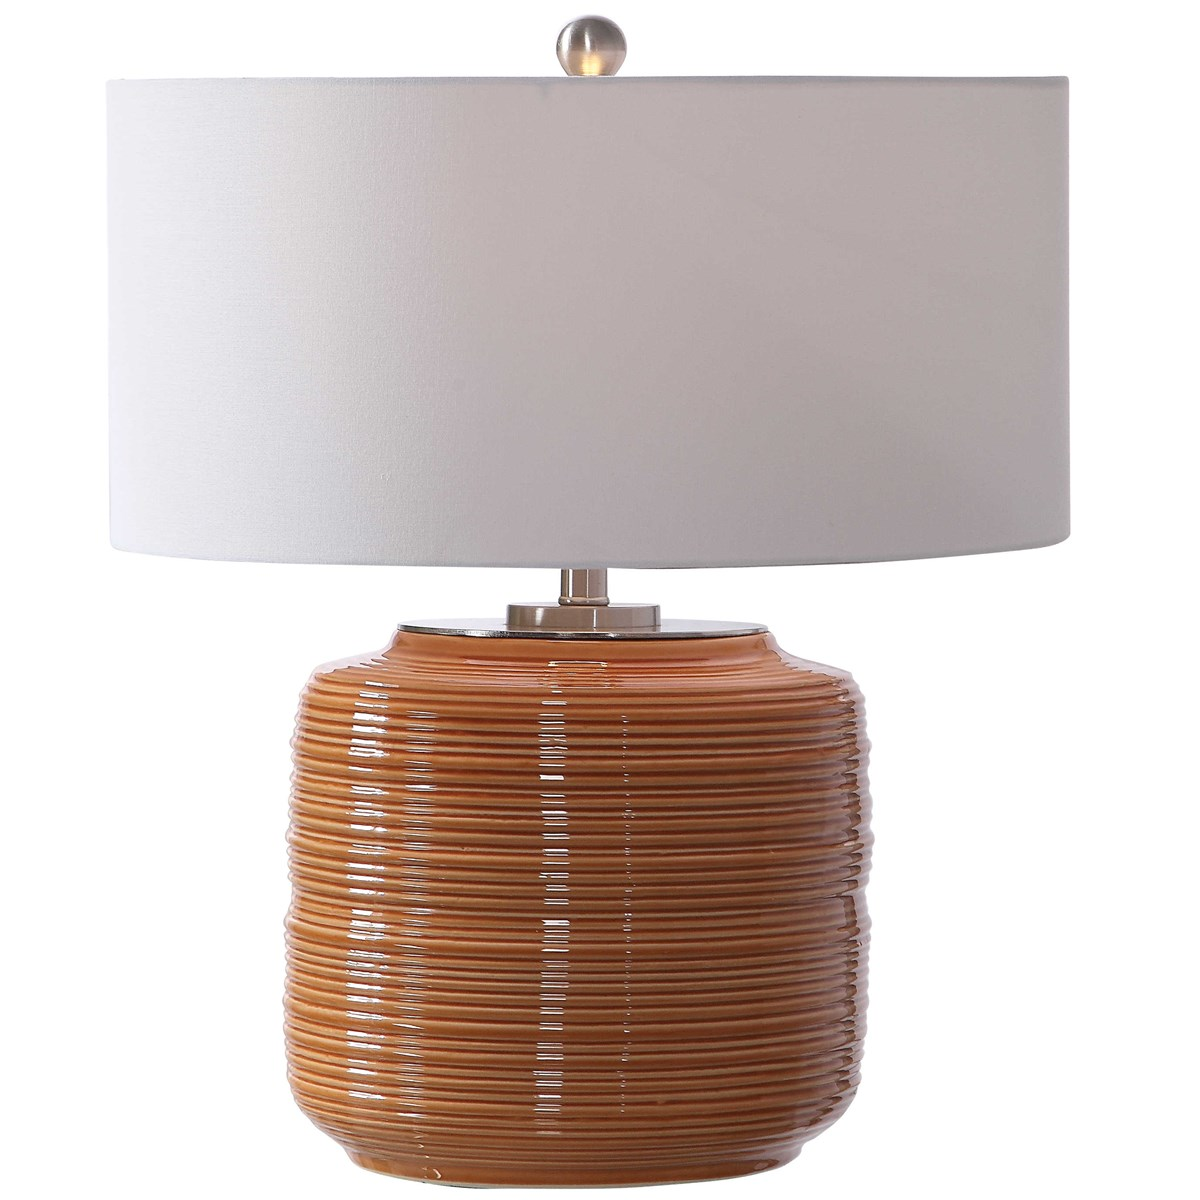 Uttermost Accessories Cayson Ribbed Ceramic Bottles S 2: Uttermost Solene Orange Table Lamp